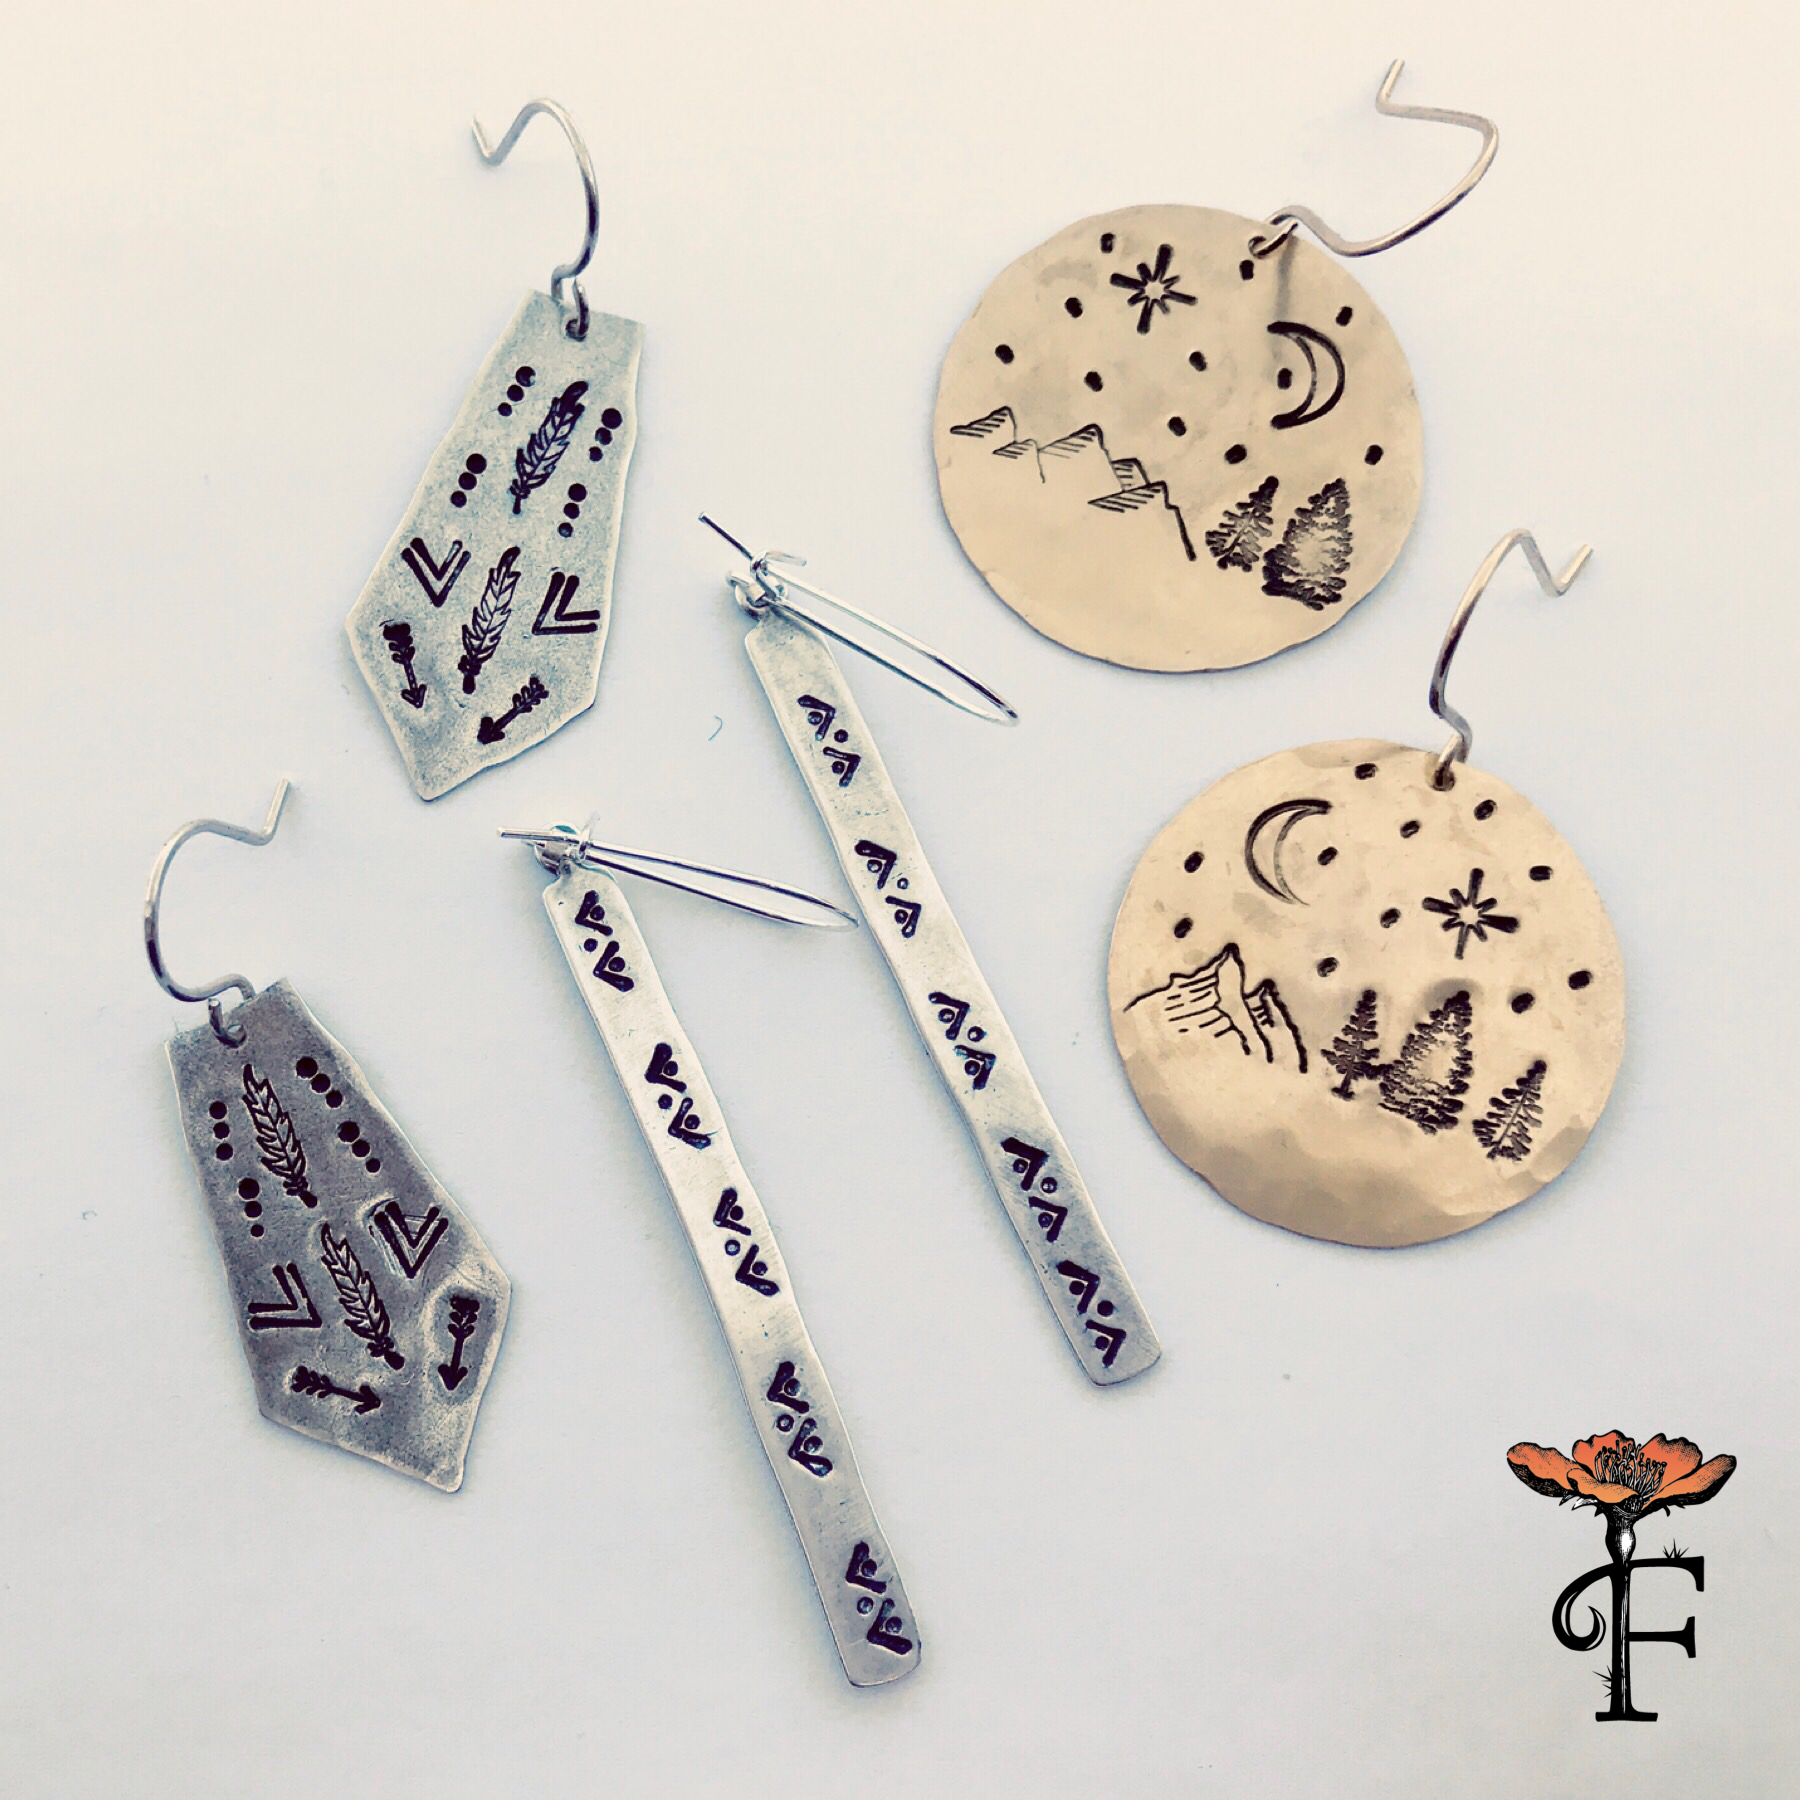 We're now offering DIY Jewelry Stamping Parties - Grab a friend and come make some one of a kind GORGEOUS jewelry!Learn more:attend a public event | host a private event